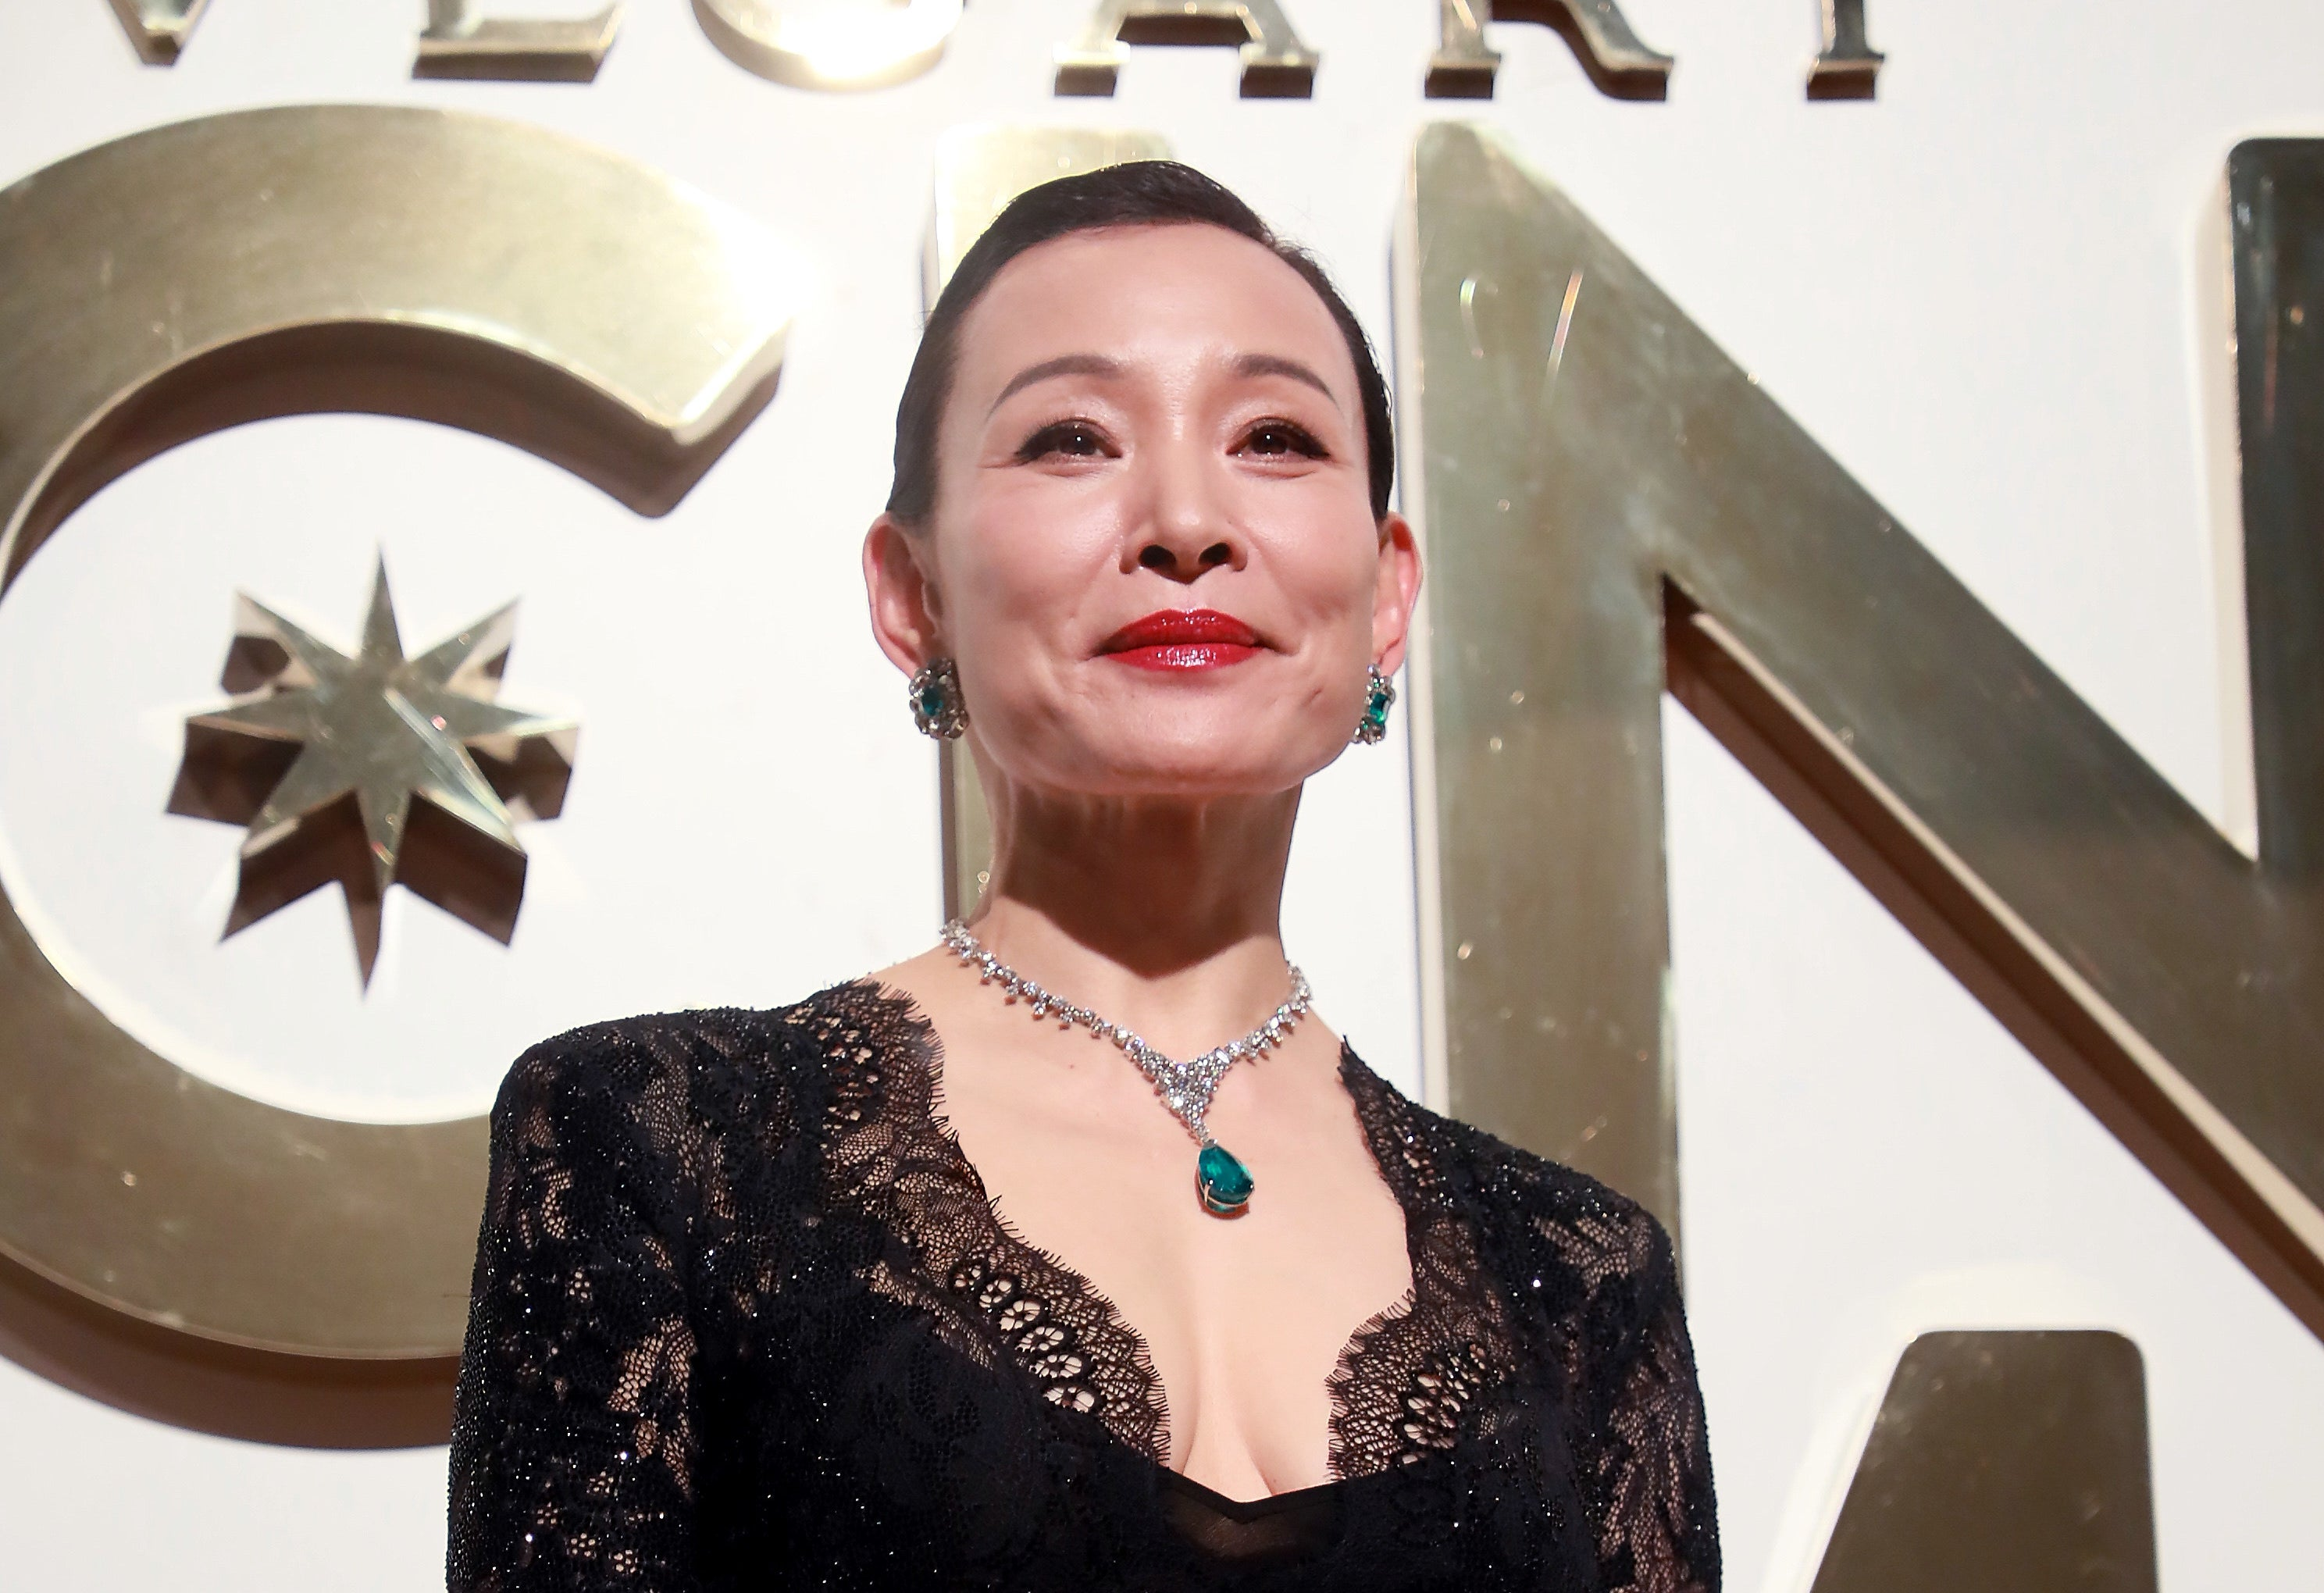 Joan Chen looking very regal in a lacy black outfit and bejeweled necklace